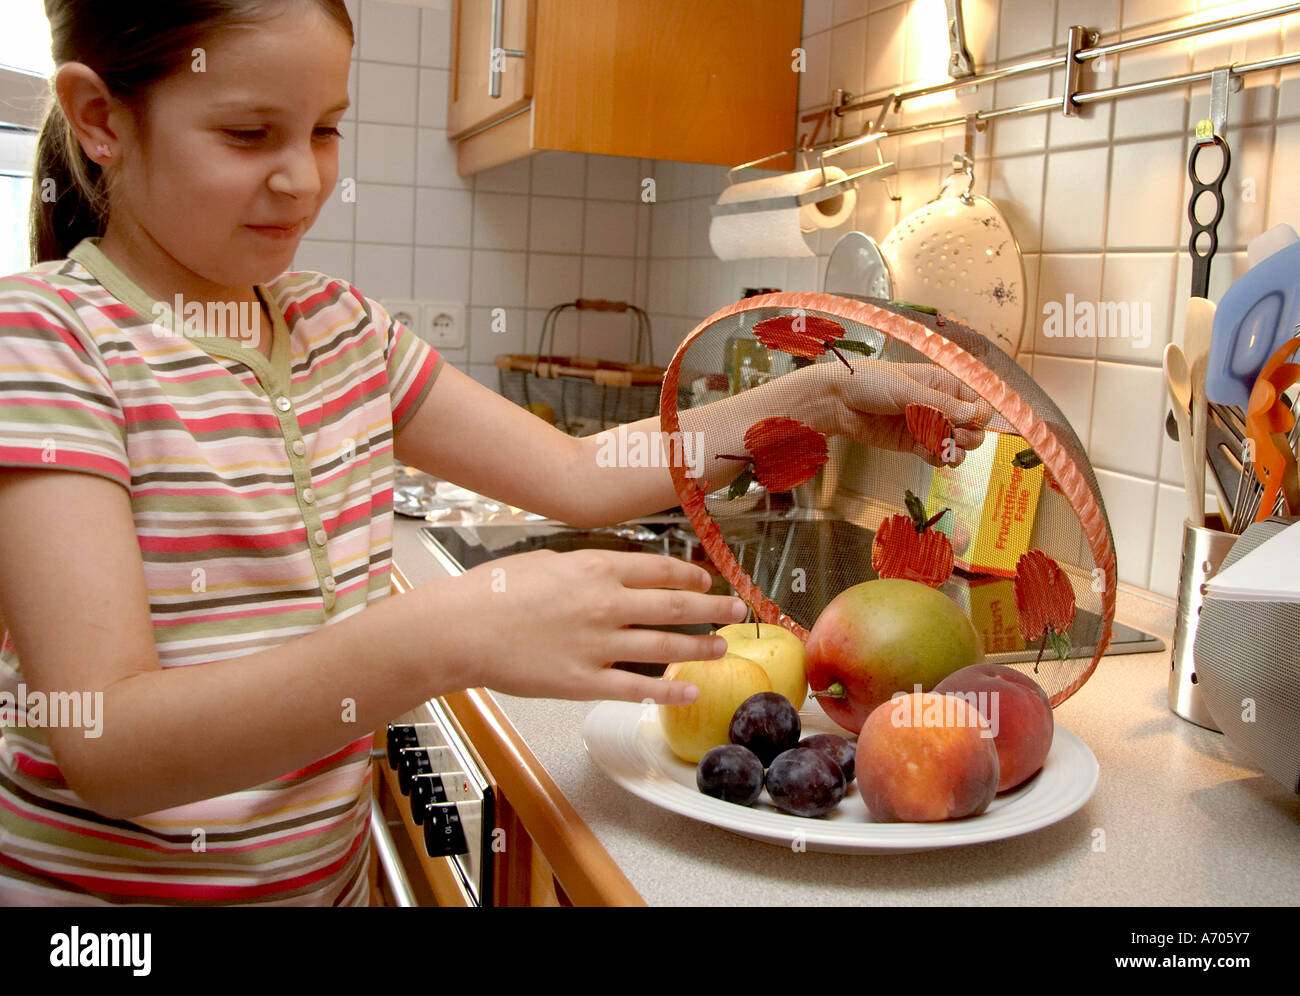 Fruit plate, Leonie looks at the fruit, she does not like it - Stock Image